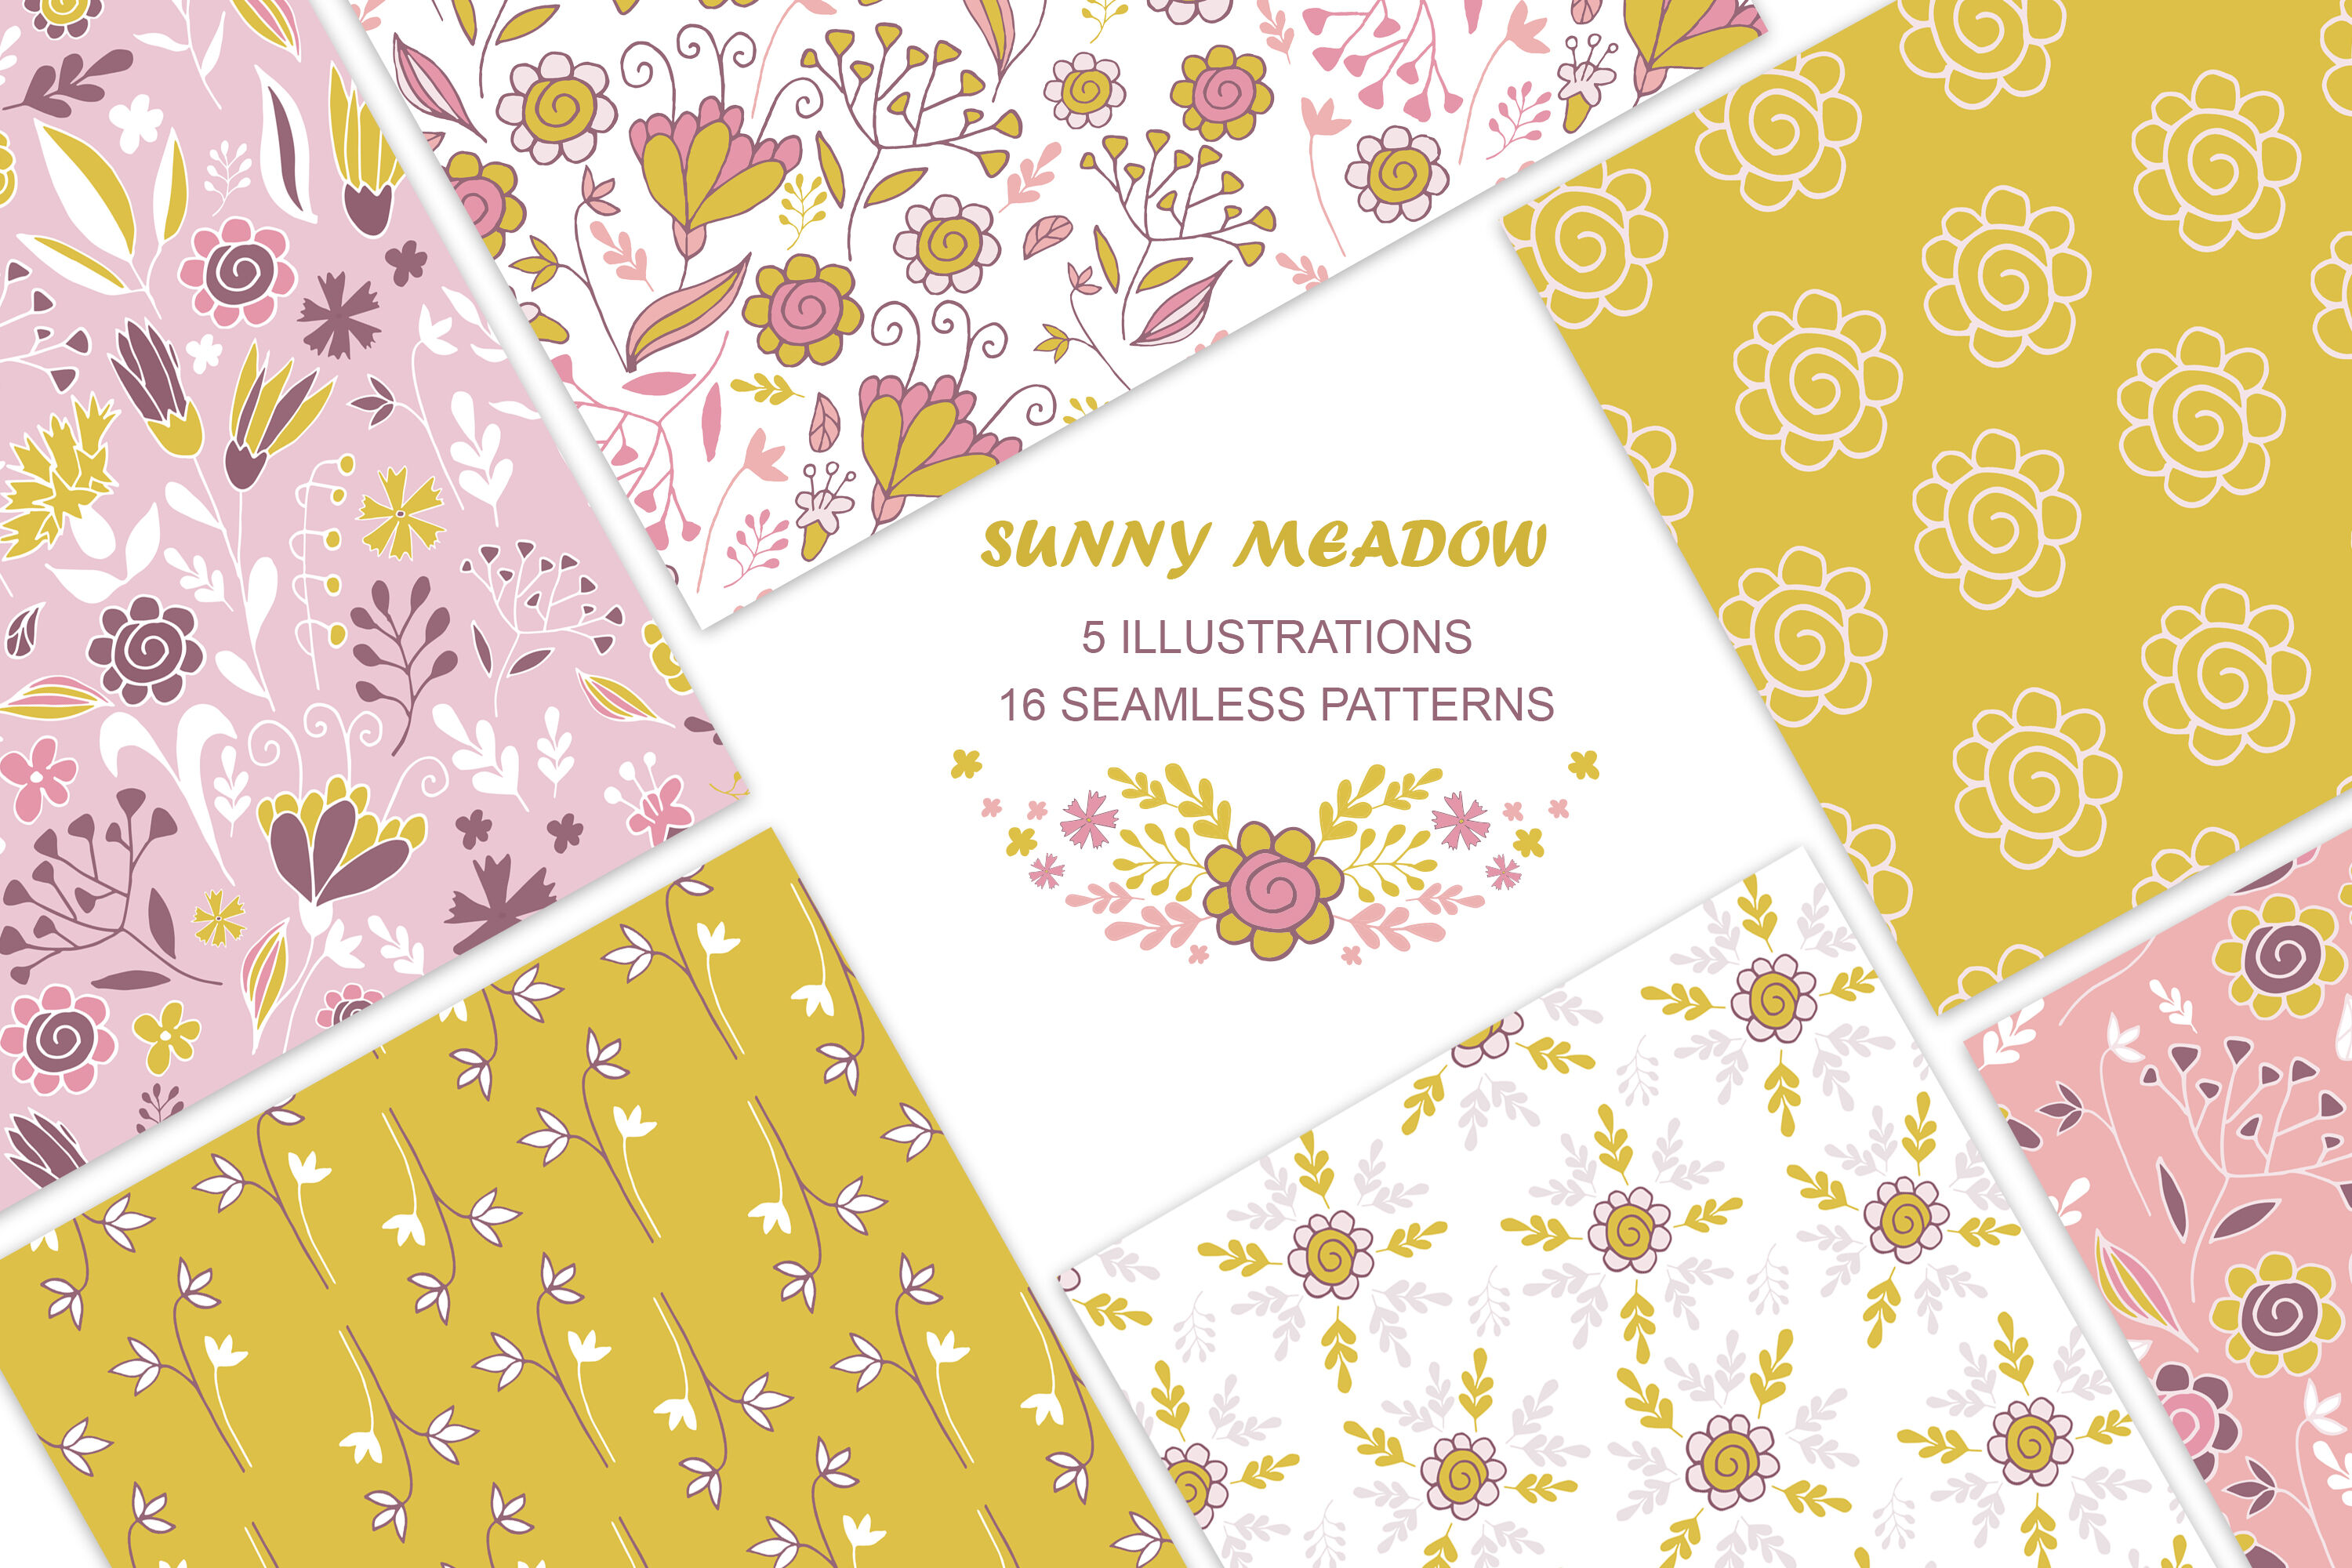 Vintage Seamless Floral Patterns And Illustrations Mustard Pink